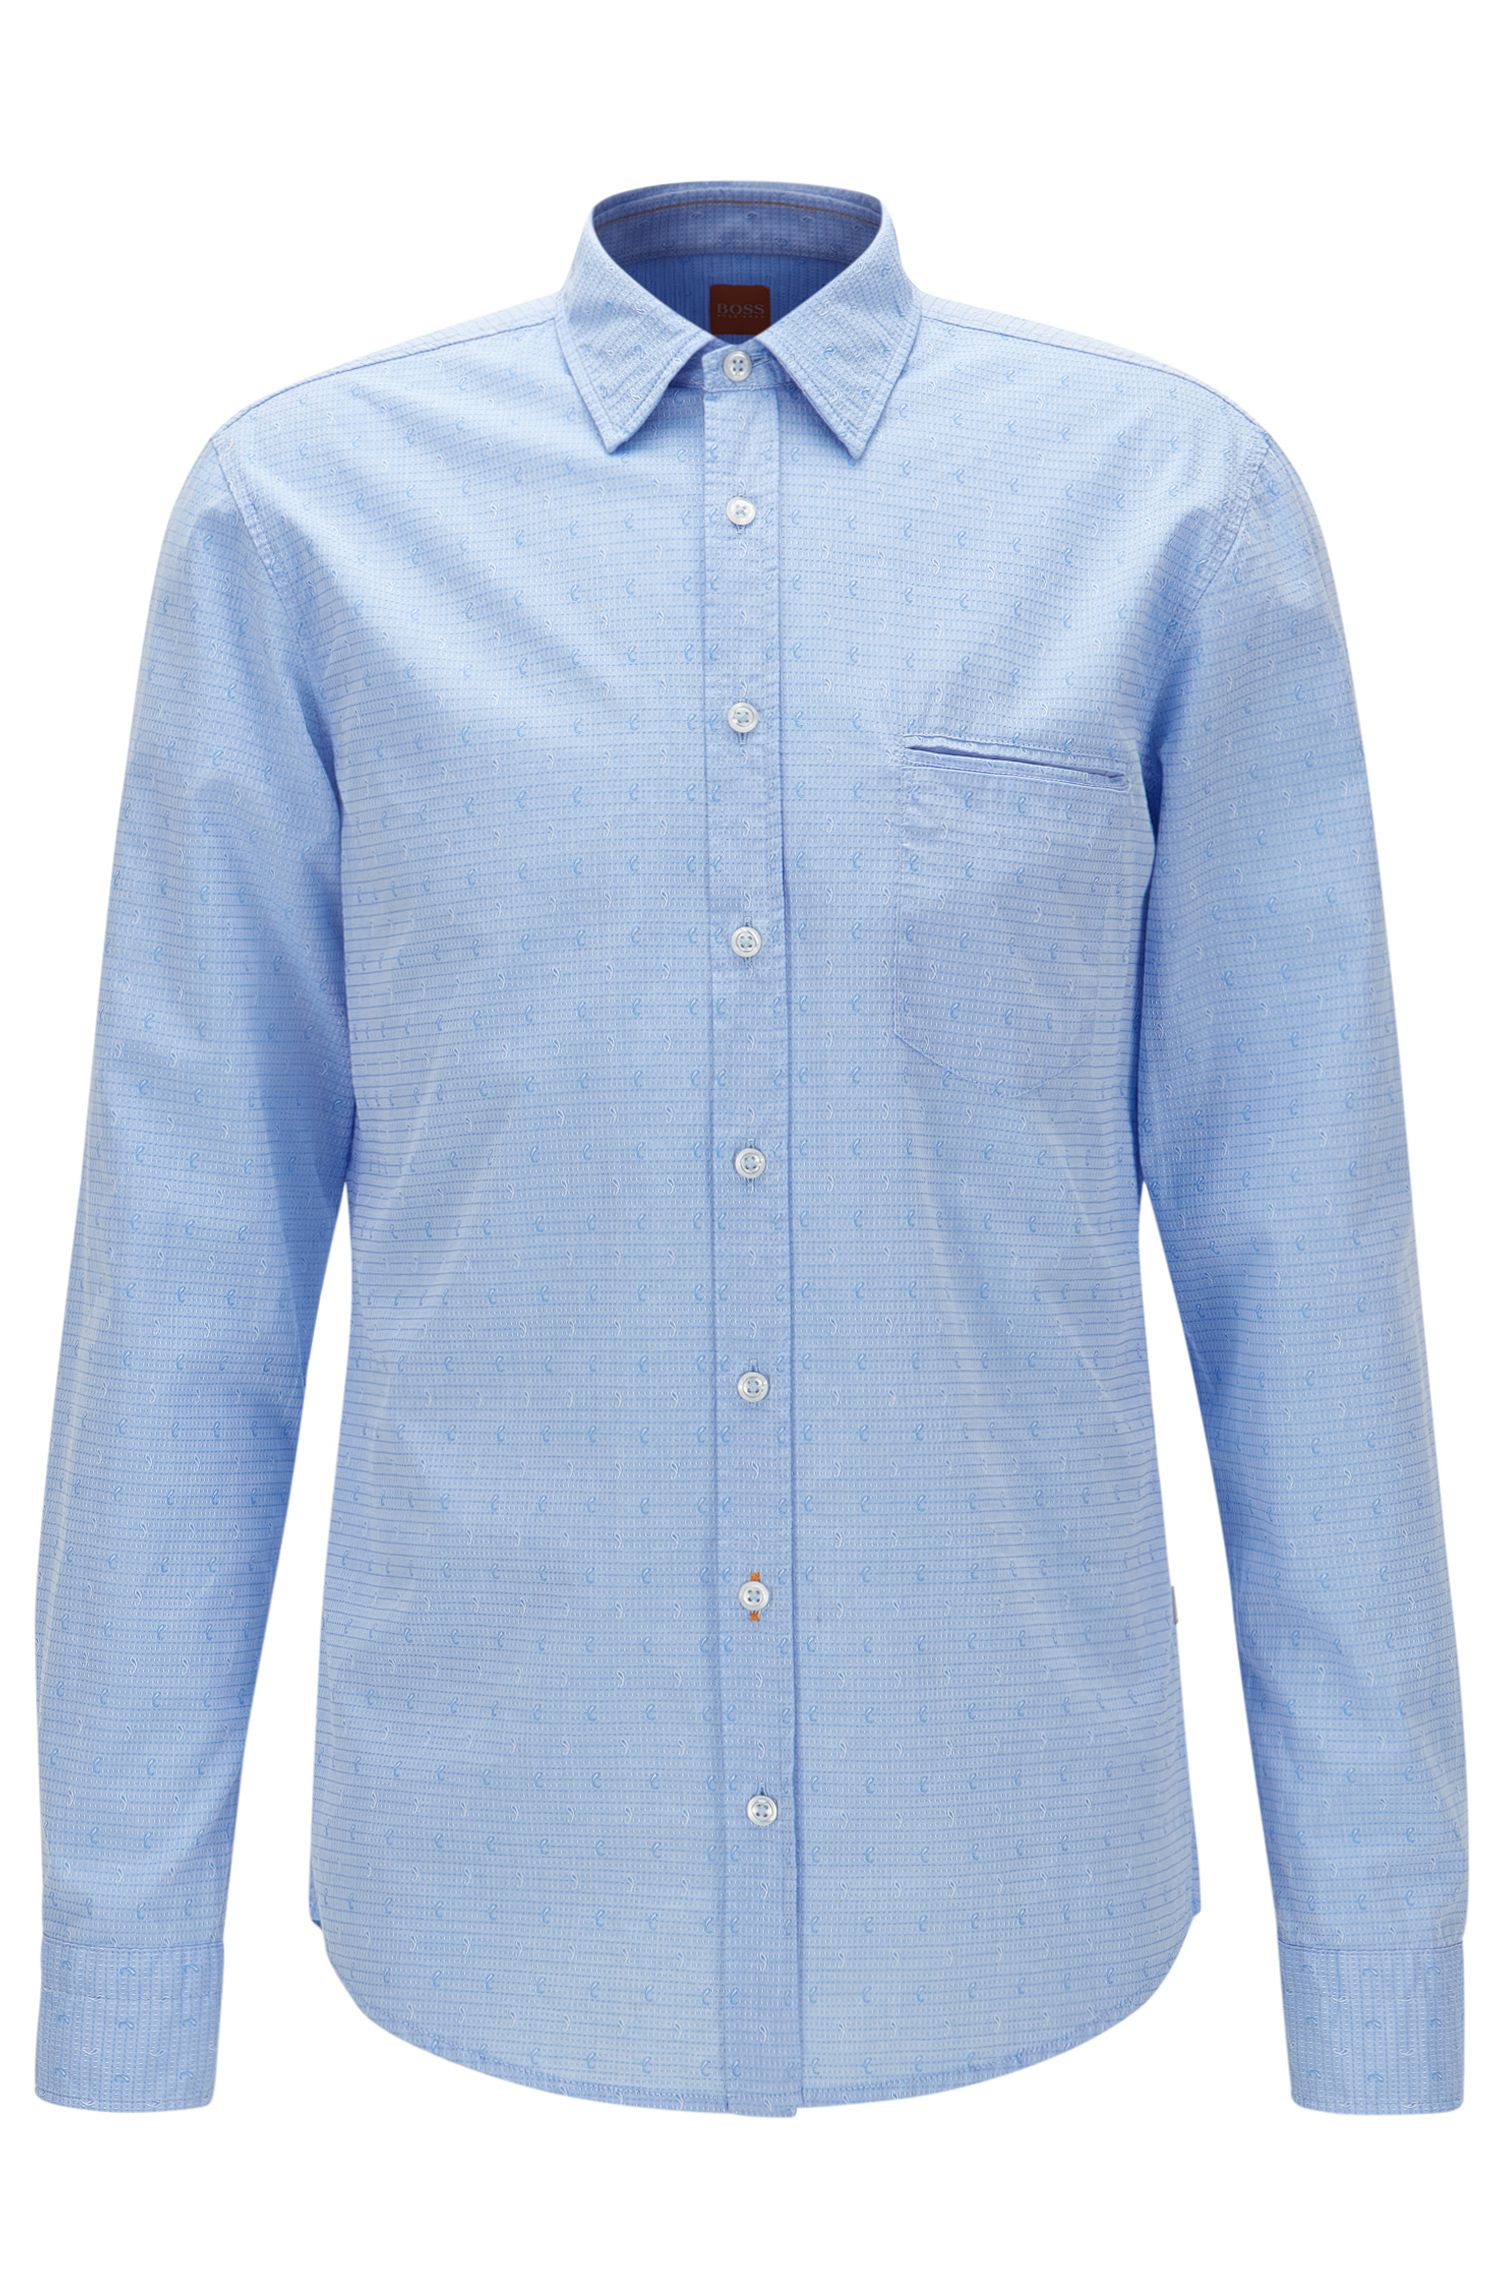 Cotton jacquard shirt in a regular fit